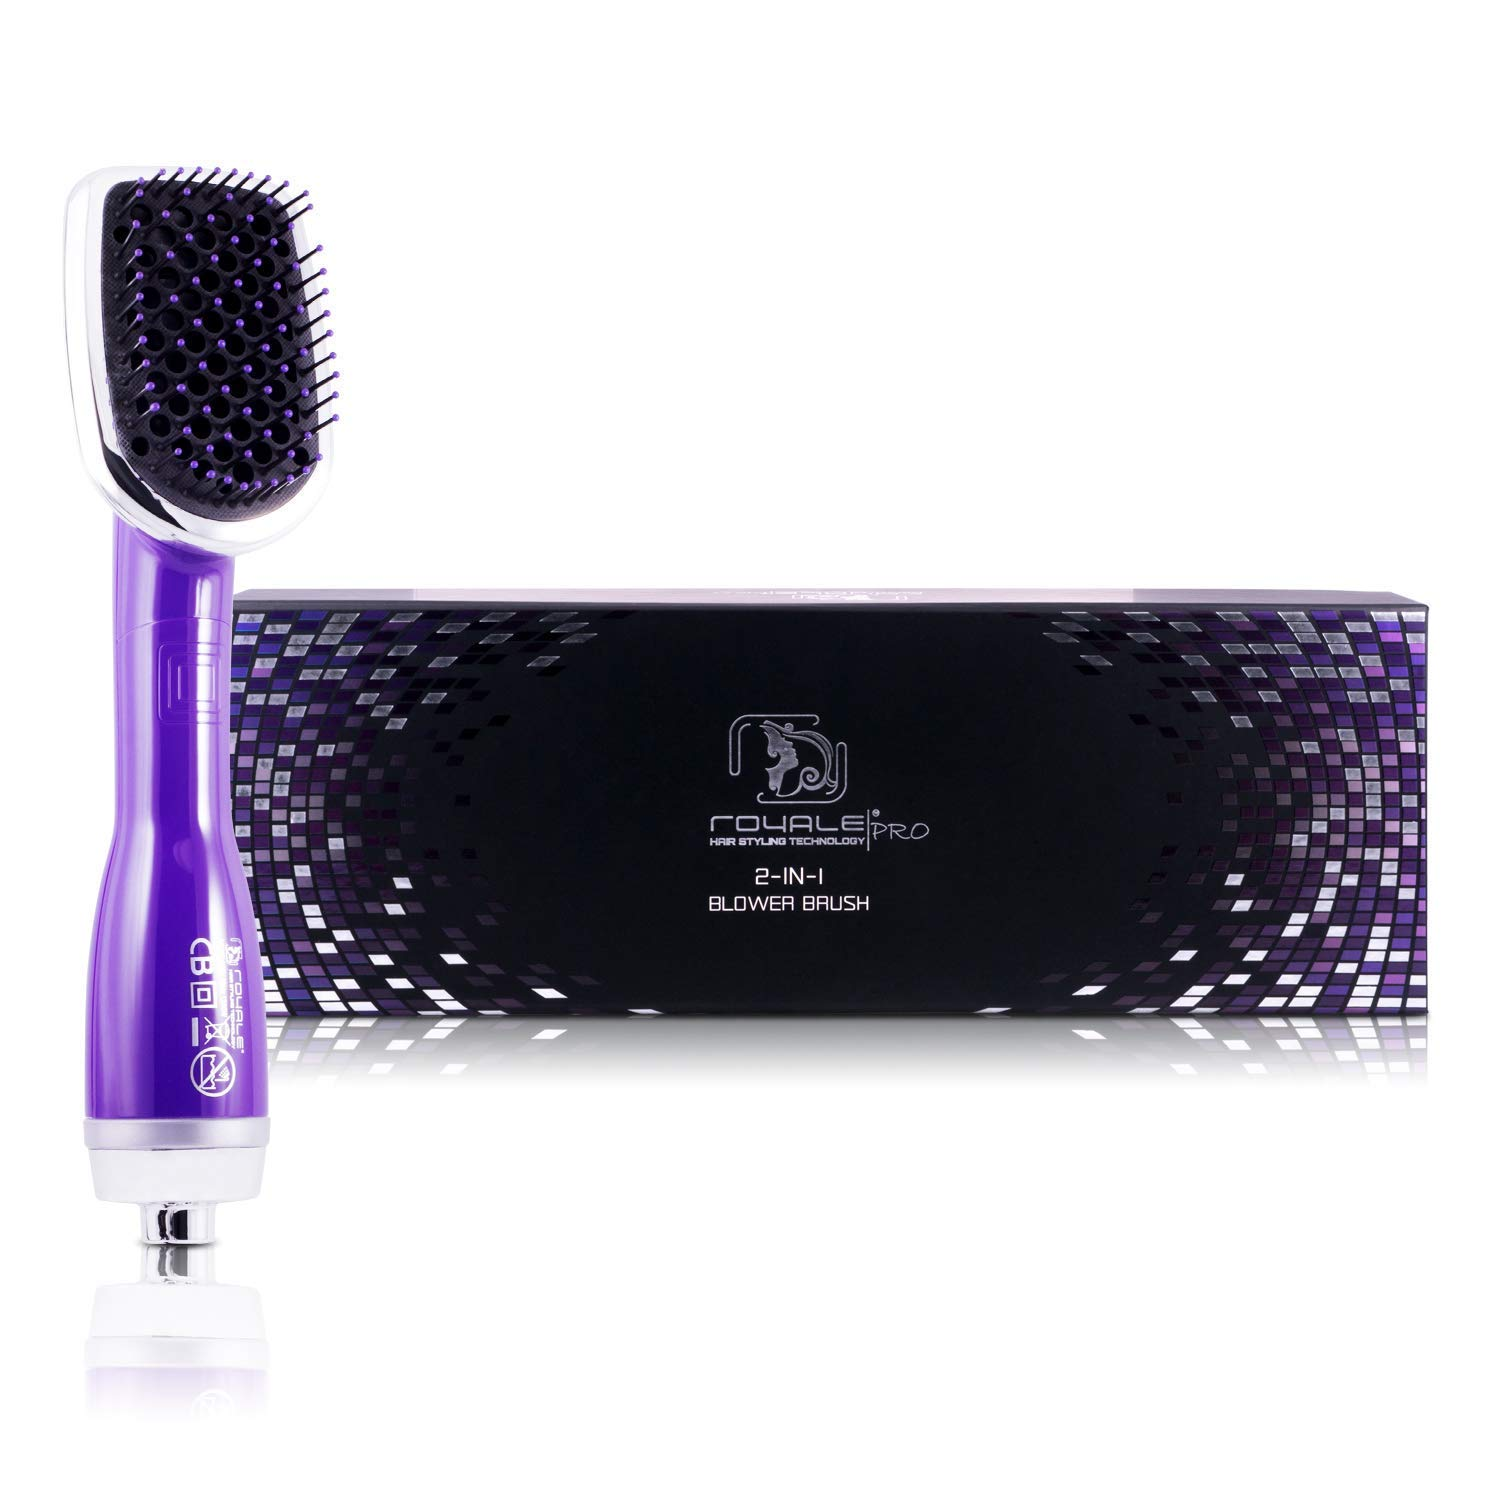 Professional Hairstyling Royale 3 in one Blower Brush 2000 Set - Interchangeable Attachments - Volumizes, Straightens and Curls - Tourmaline Technology - Purple